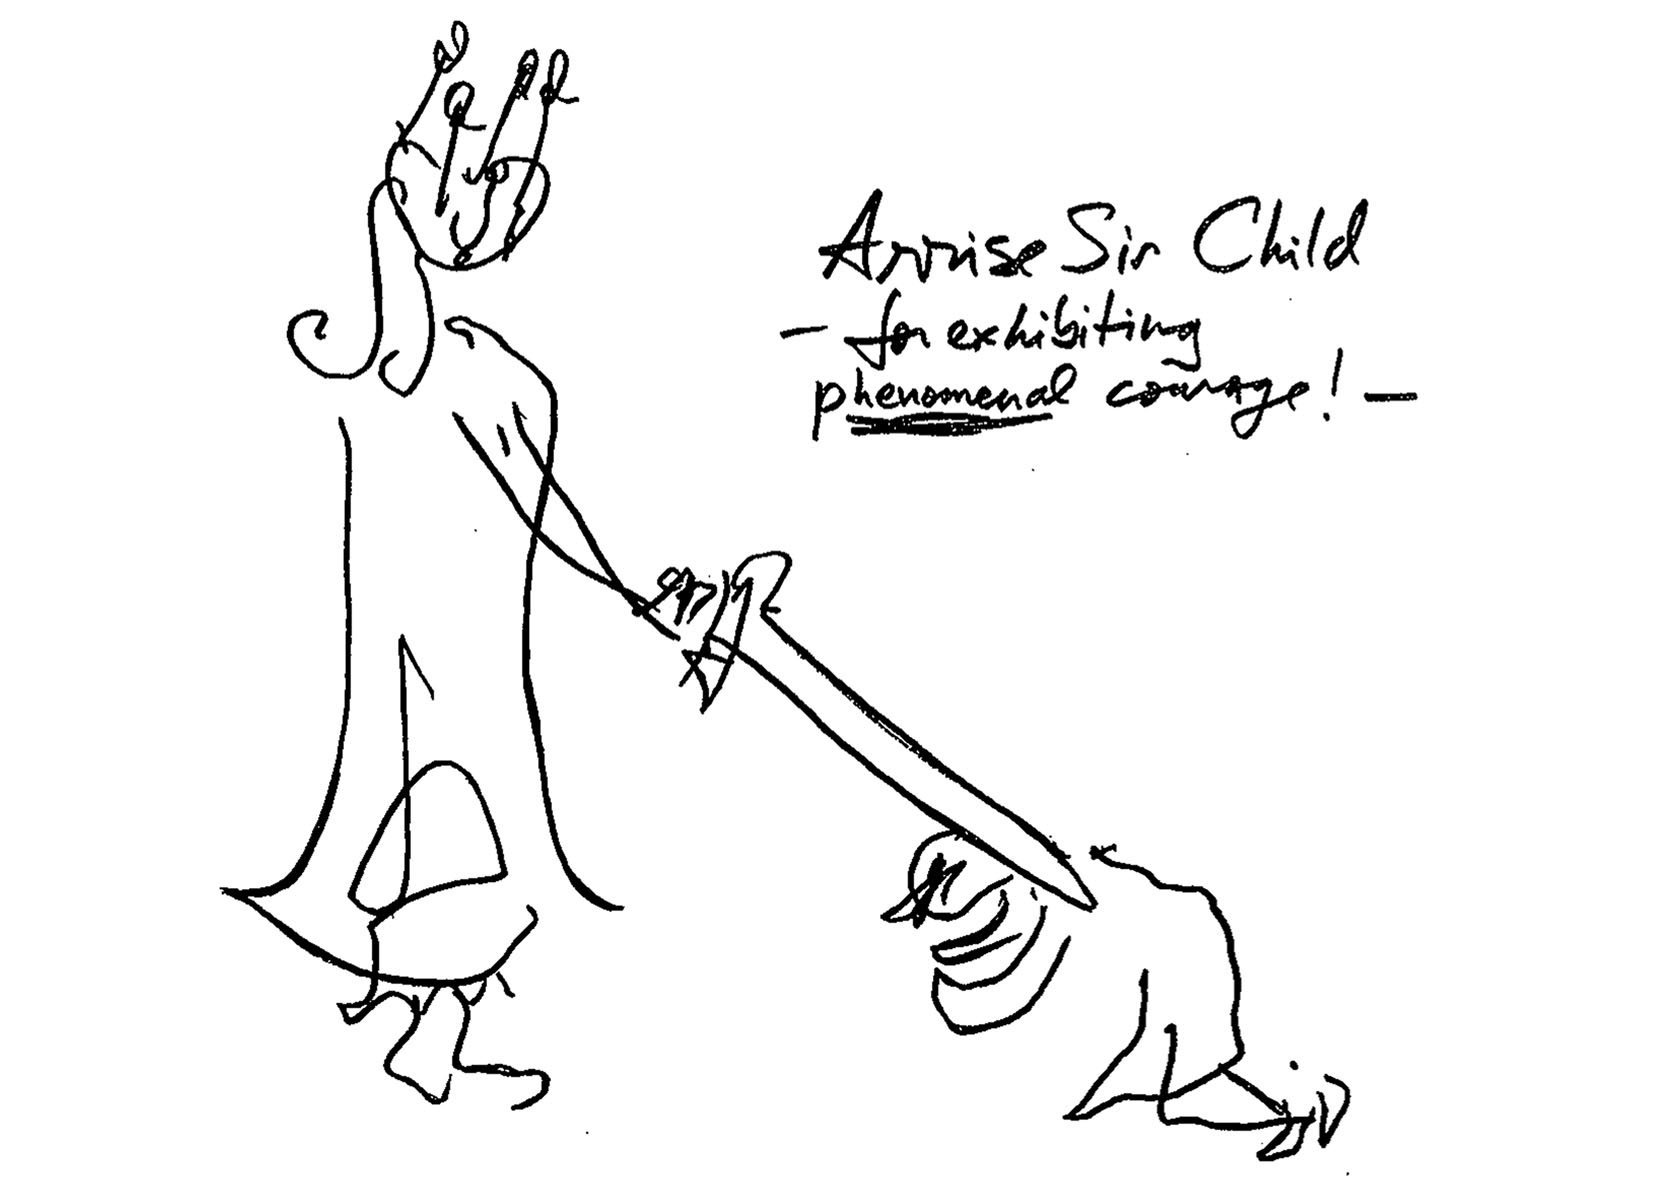 Jeremy Griffith's drawing of a child being knighted for exhibiting phenomenal courage